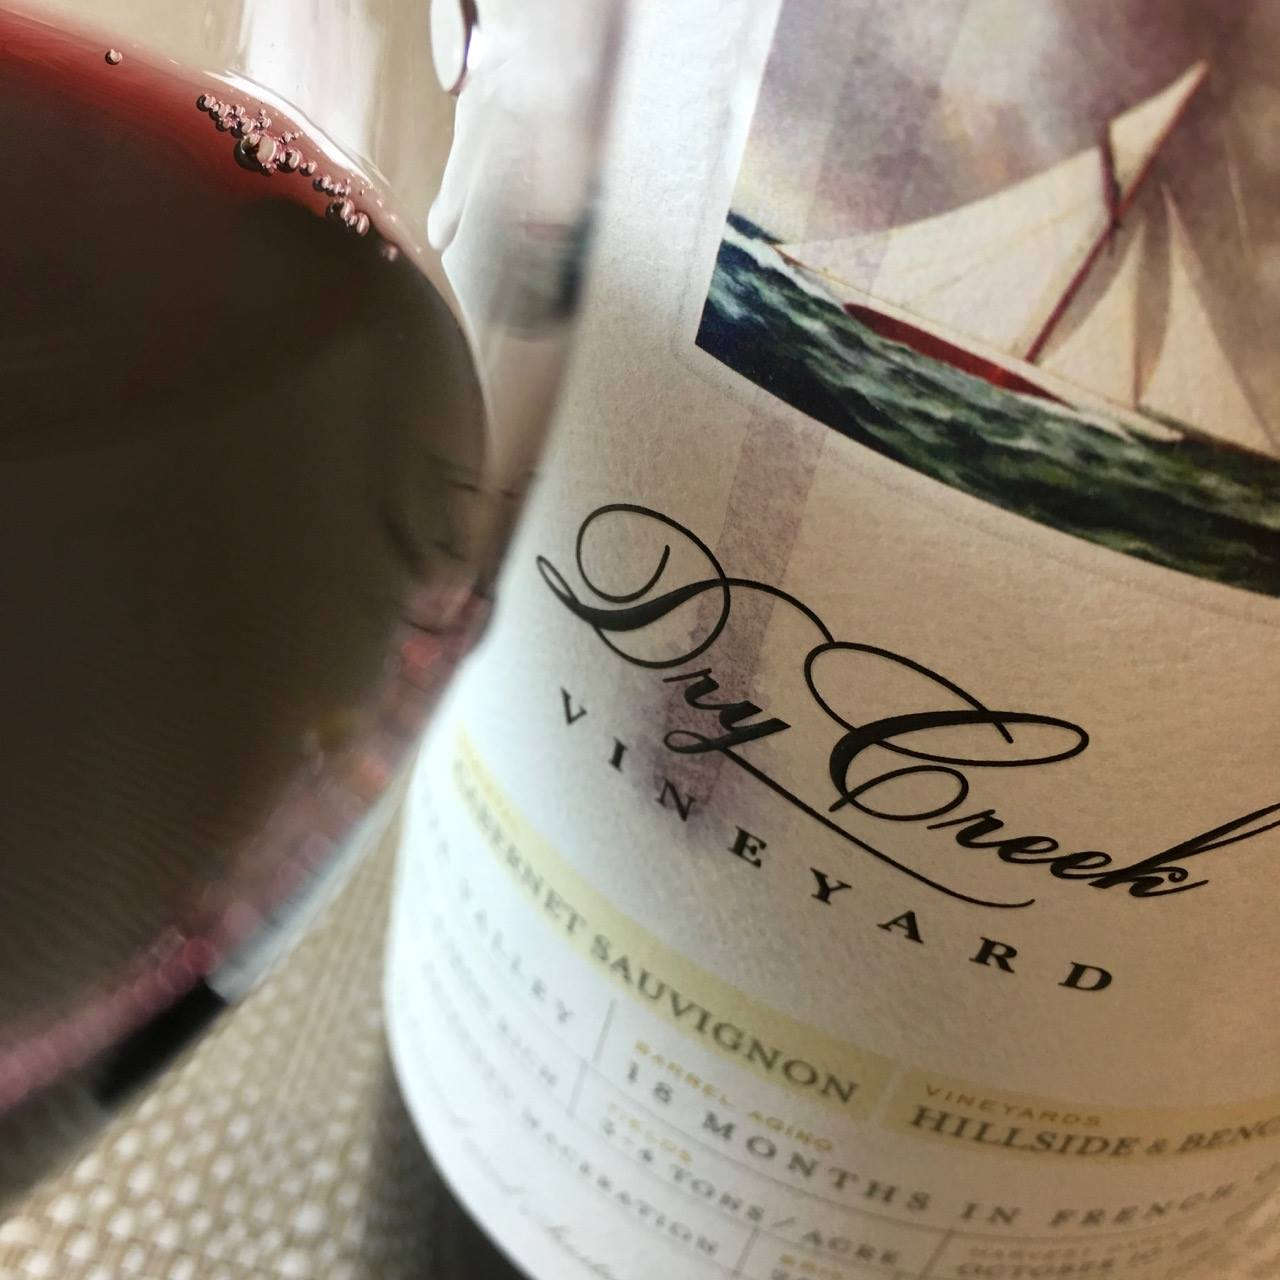 2012 Dry Creek Vineyard Cabernet Sauvignon Dry Creek Valley